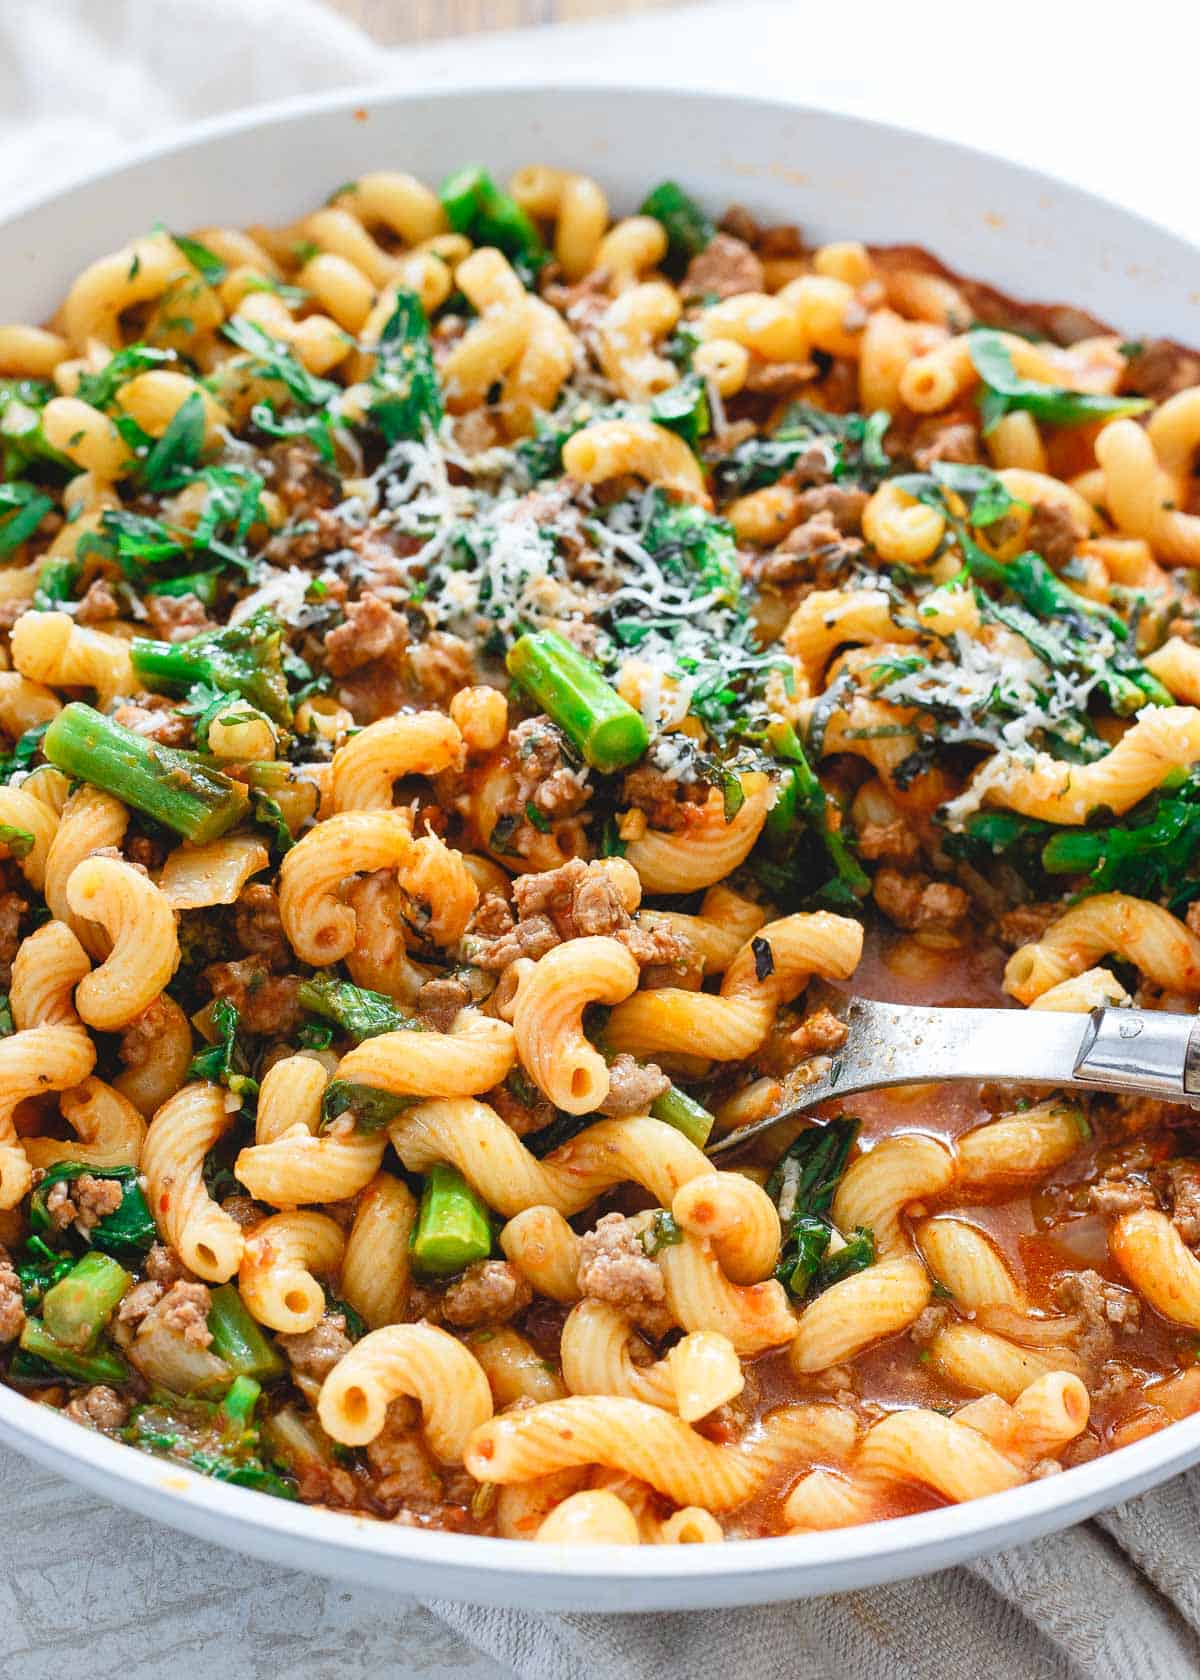 Filled with broccoli rabe, cavatappi pasta and American lamb, this lamb ragu is an easy skillet dinner perfect for the early weeks of spring.